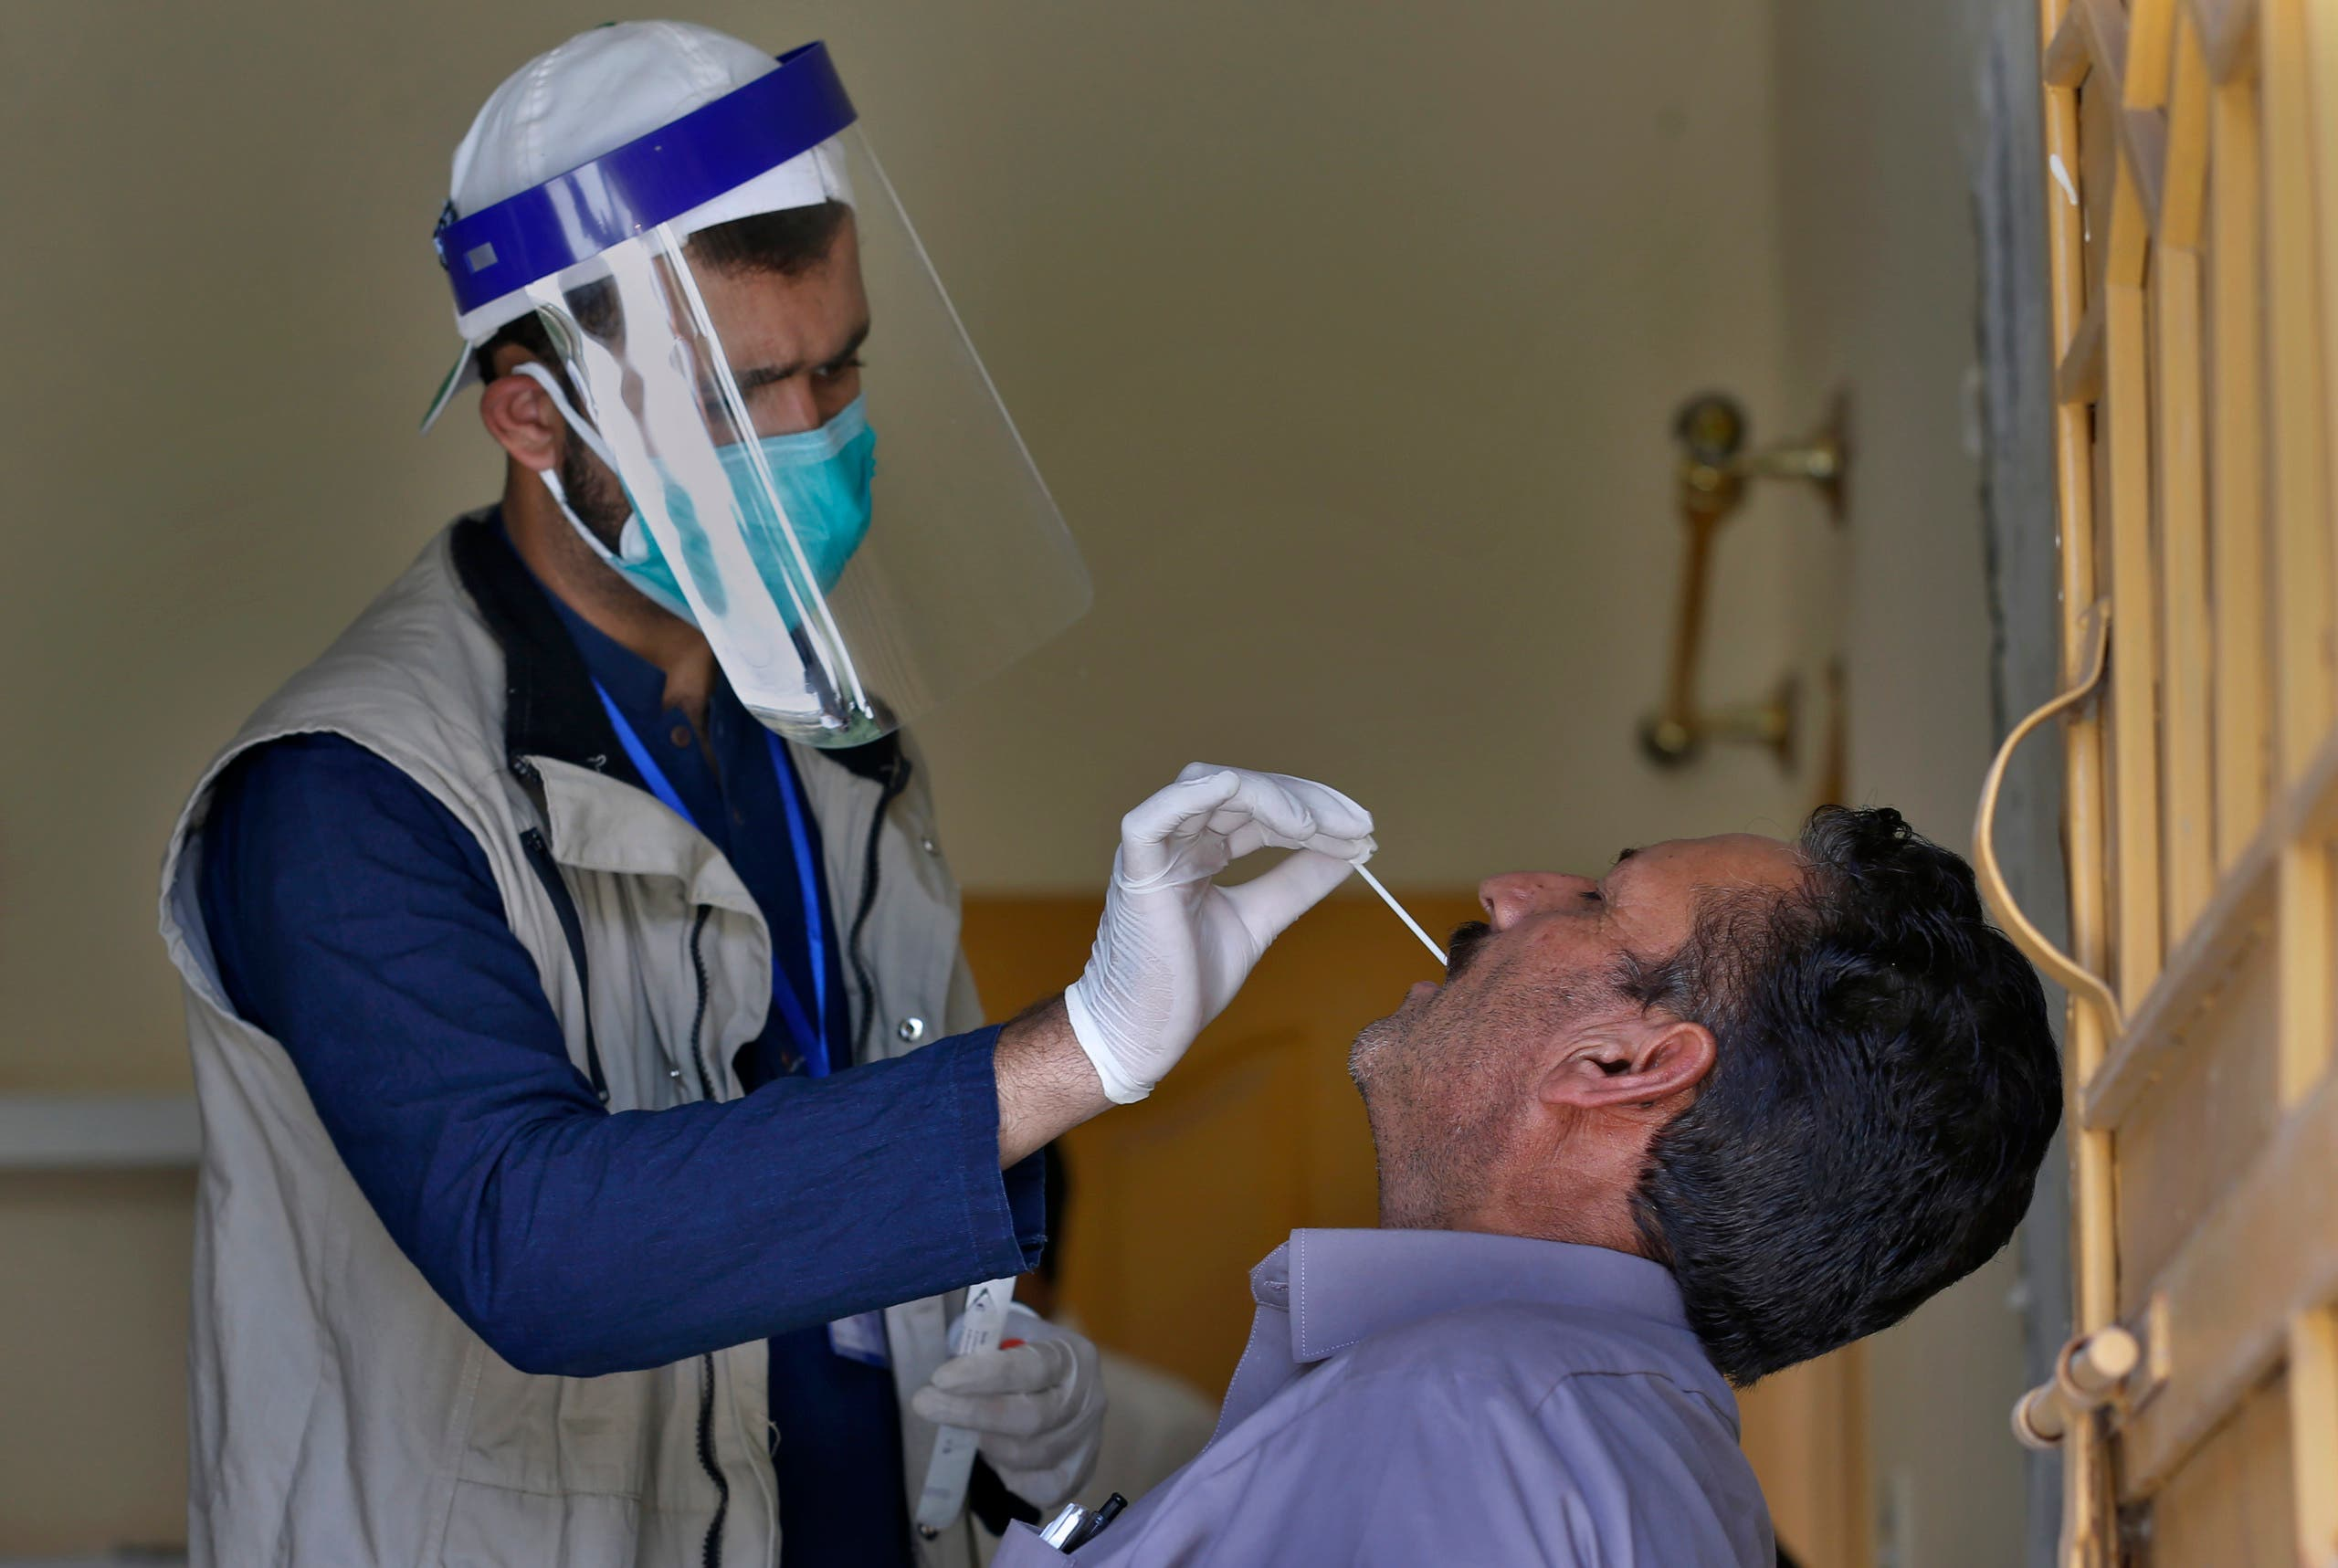 A health worker takes a swab sample of a person during door-to-door testing and screening facility for the new coronavirus, in Islamabad, Pakistan, Monday, June 15, 2020. (AP)